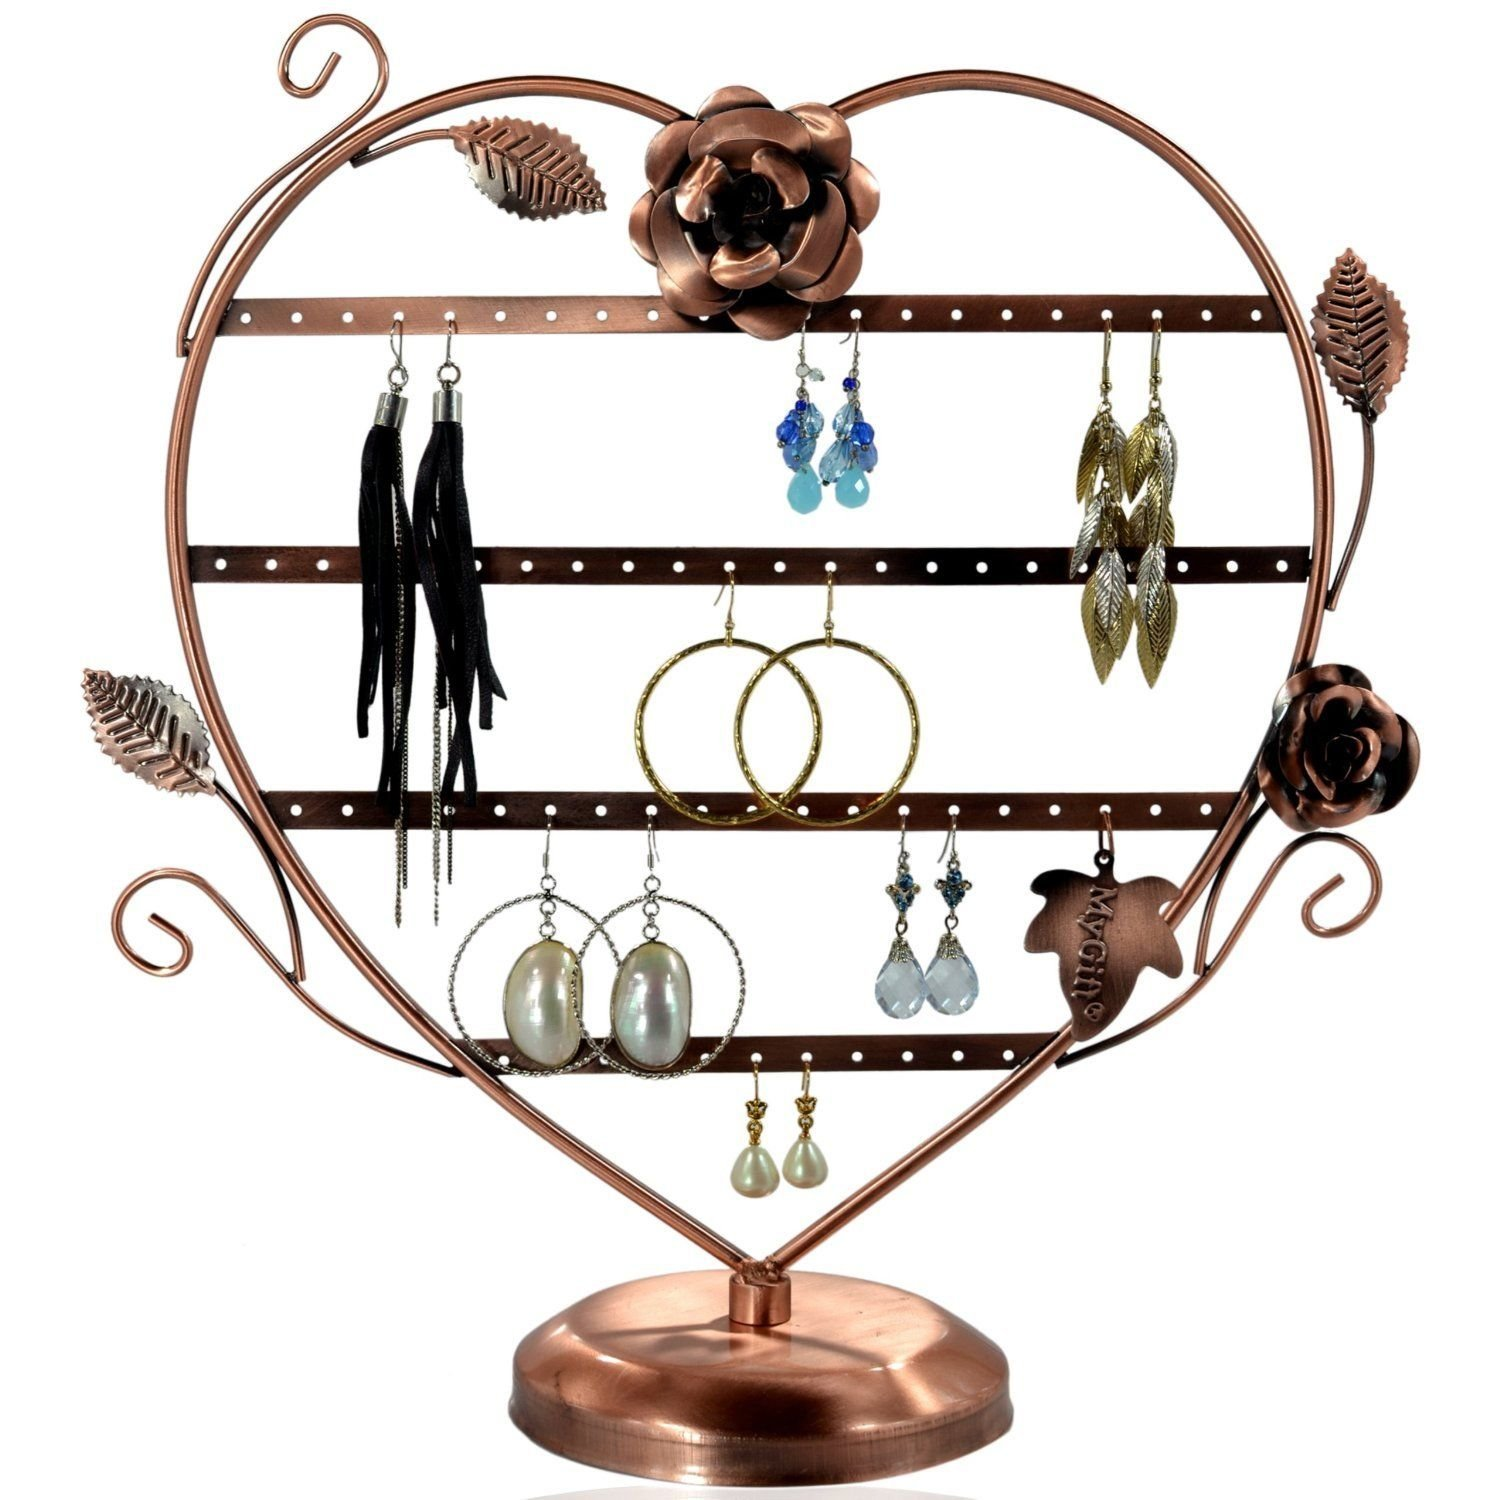 Copper Color Heart-Shaped with Roses Earring Holder Tree Oraganizer Stand Display